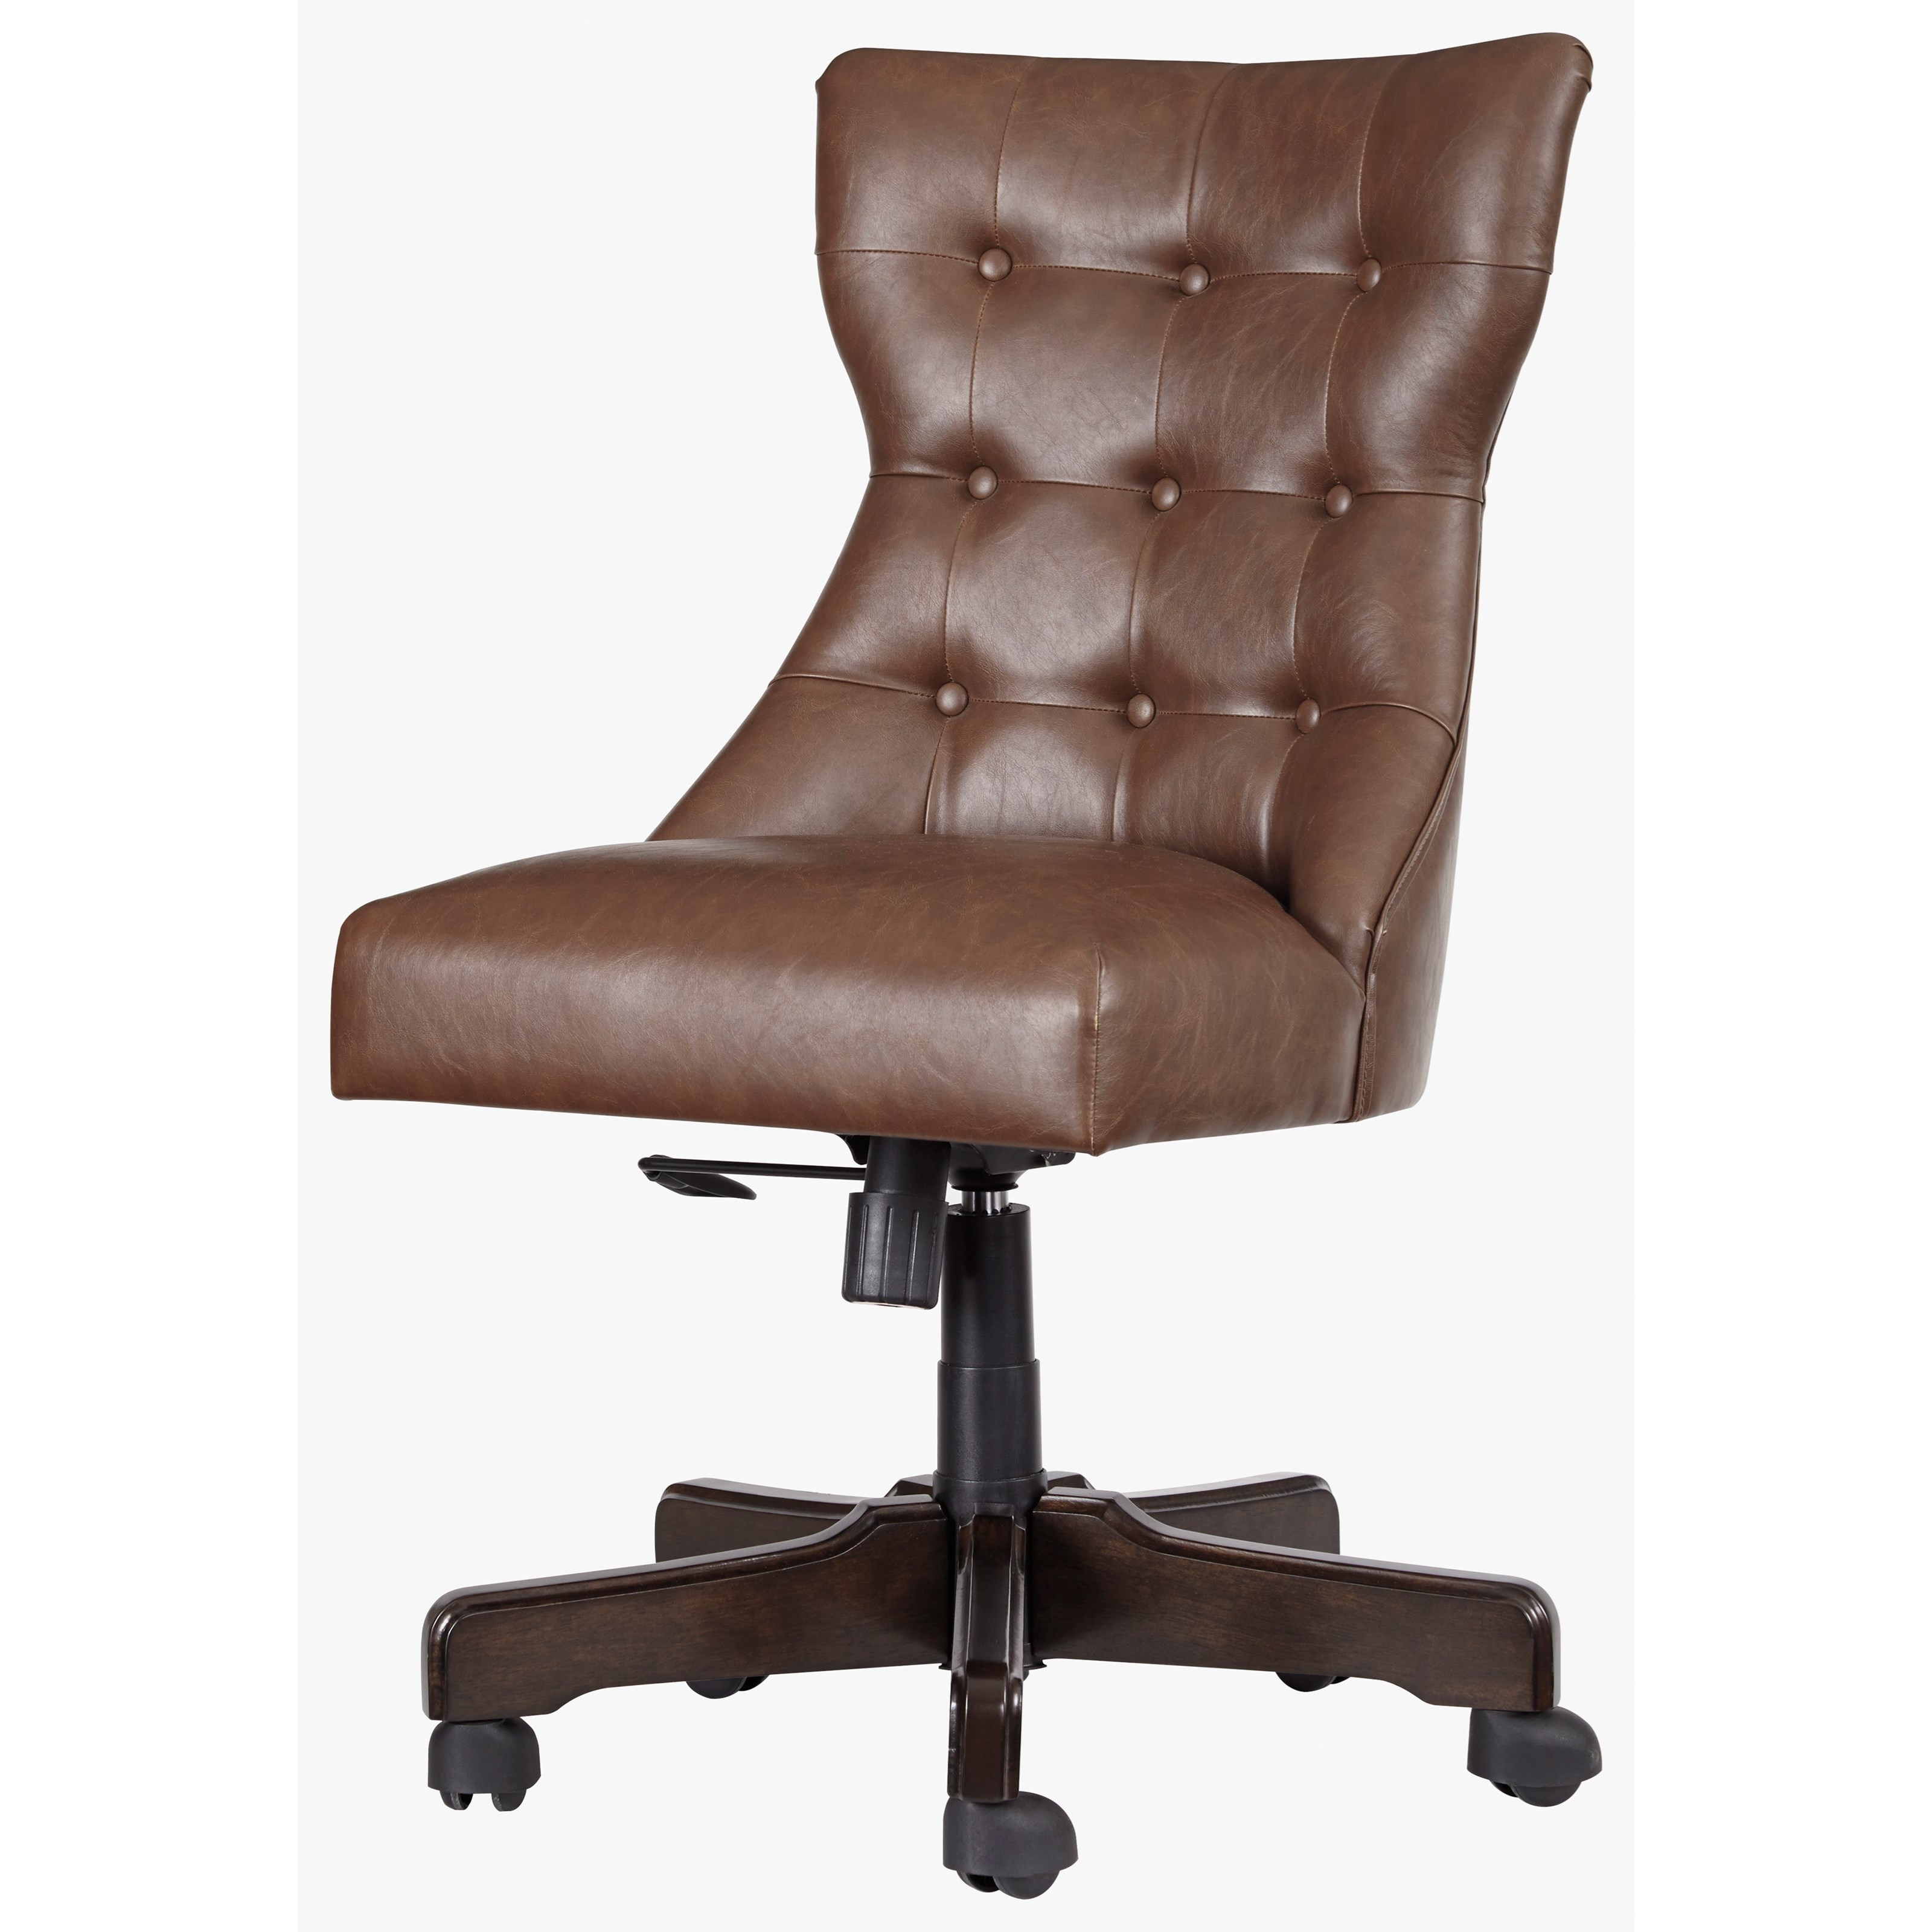 Signature Design By Ashley Office Chair ProgramHome Office Swivel Desk Chair  ...